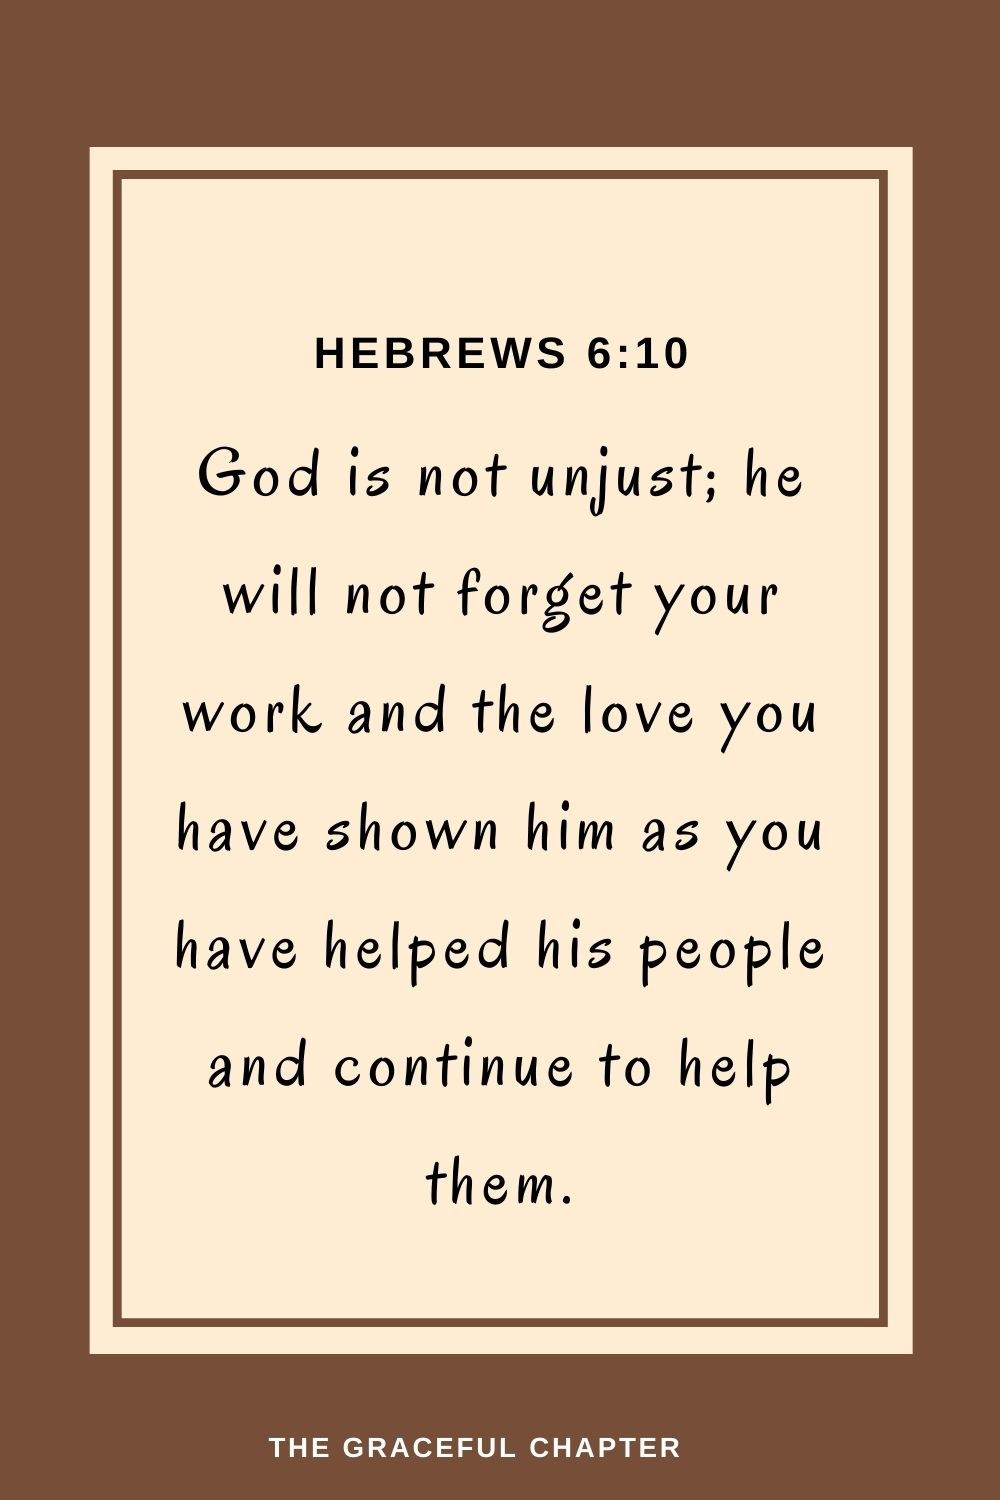 God is not unjust; he will not forget your work and the love you have shown him as you have helped his people and continue to help them. Hebrews 6:10